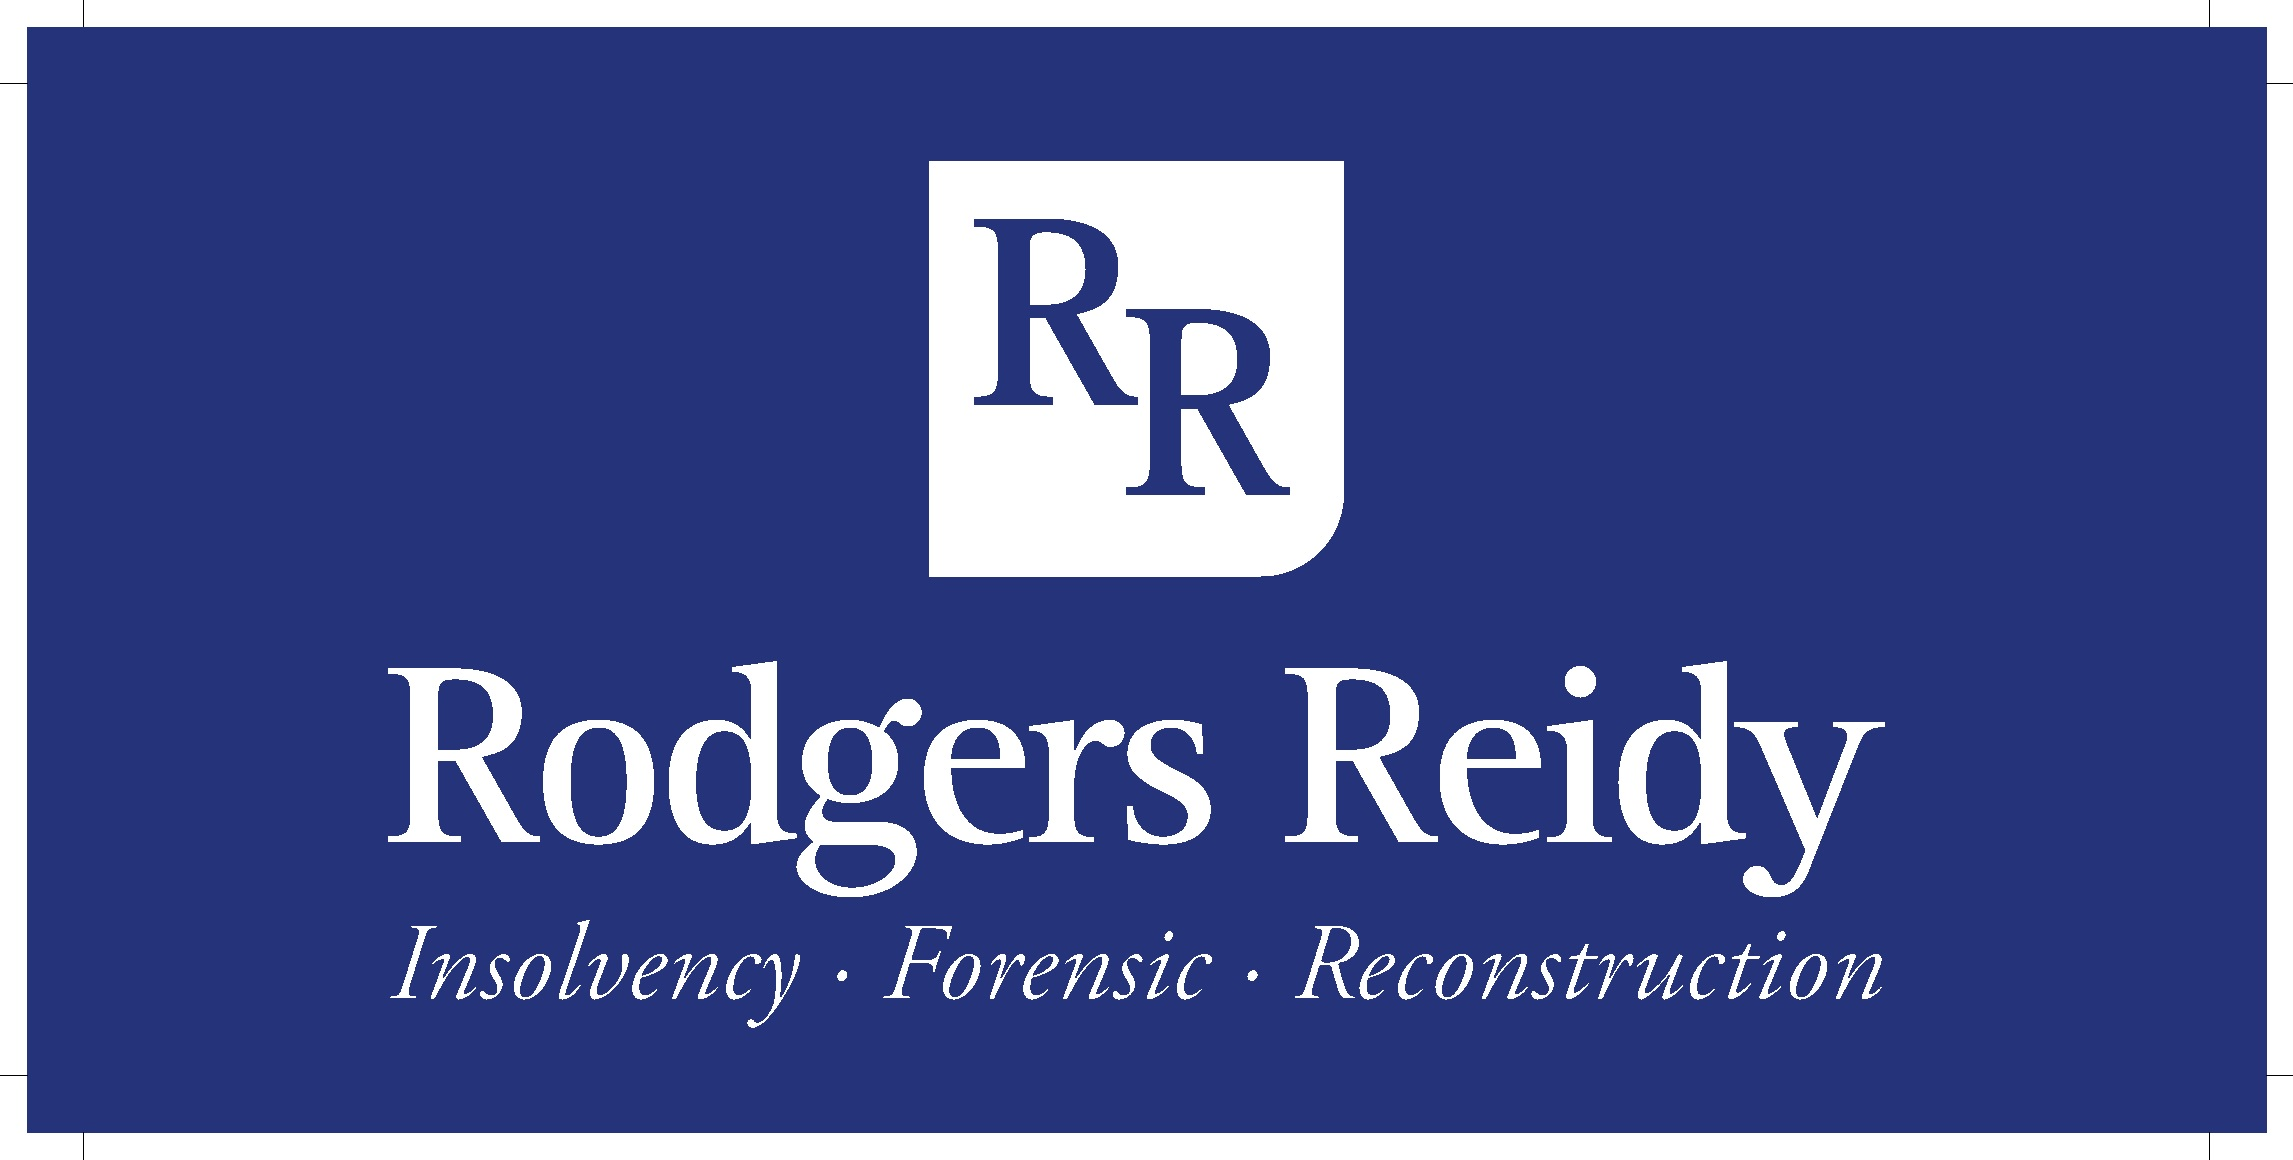 Rodgers Reidy. Insolvency. Forensic Reconstruction financial services